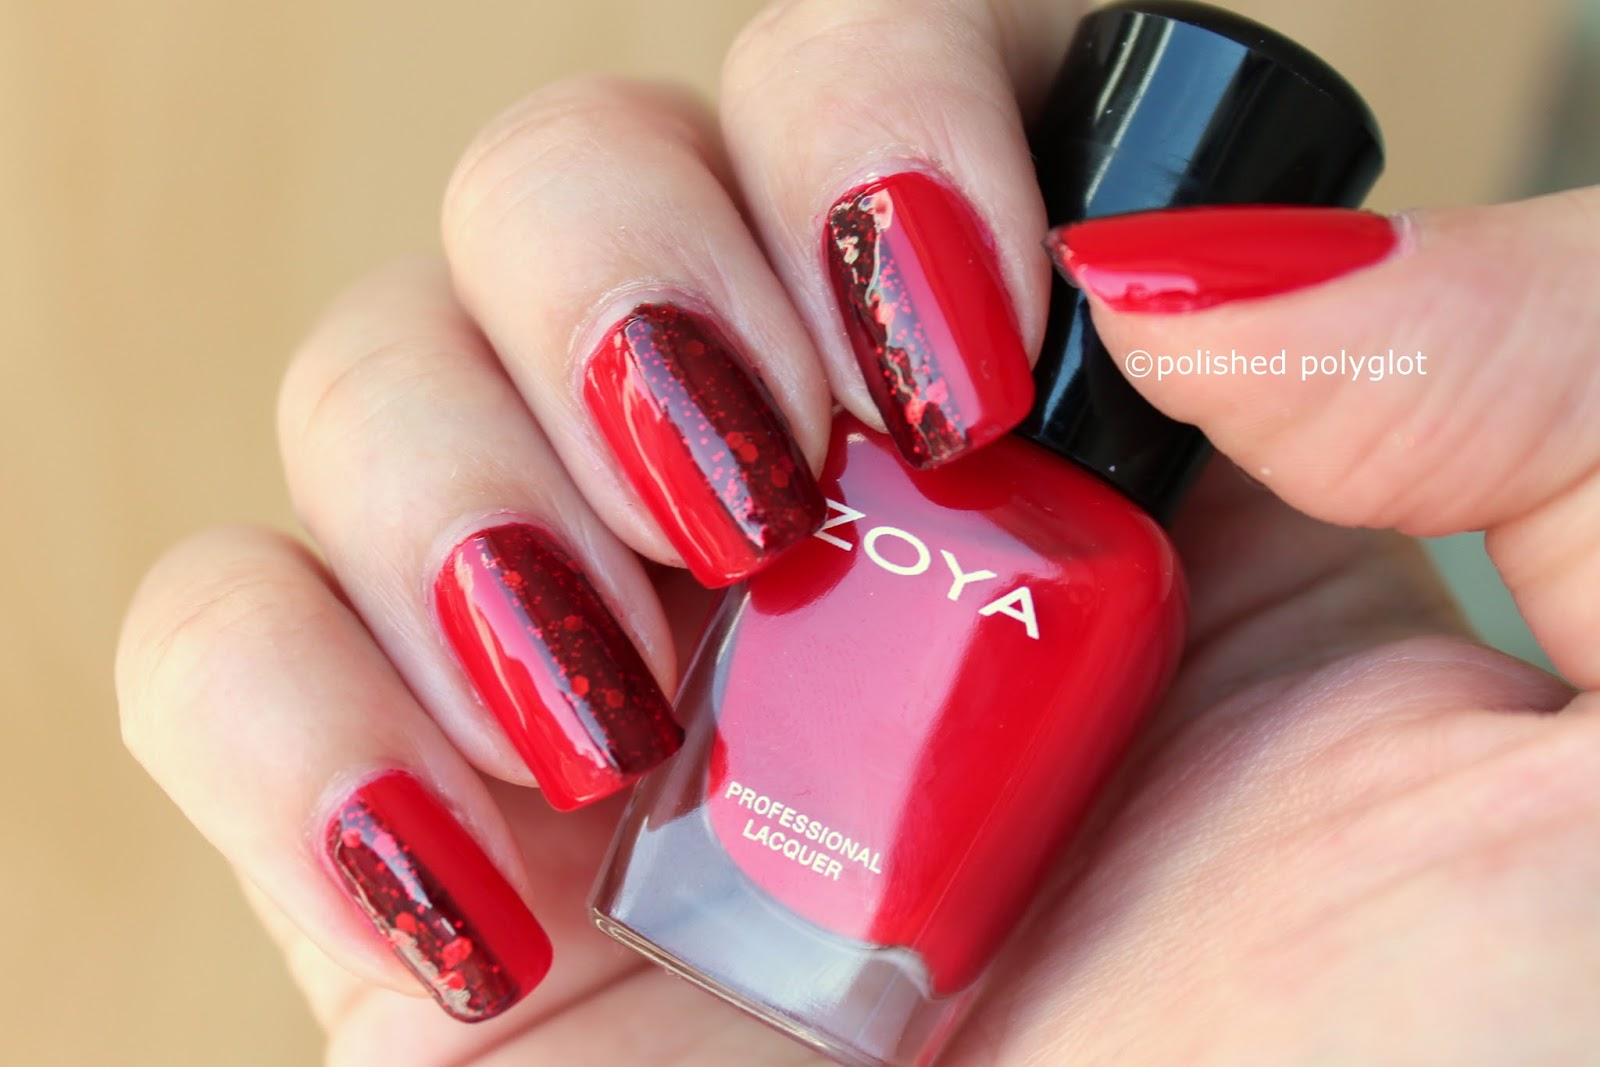 40 Great Nail Art Ideas: Red / Polished Polyglot